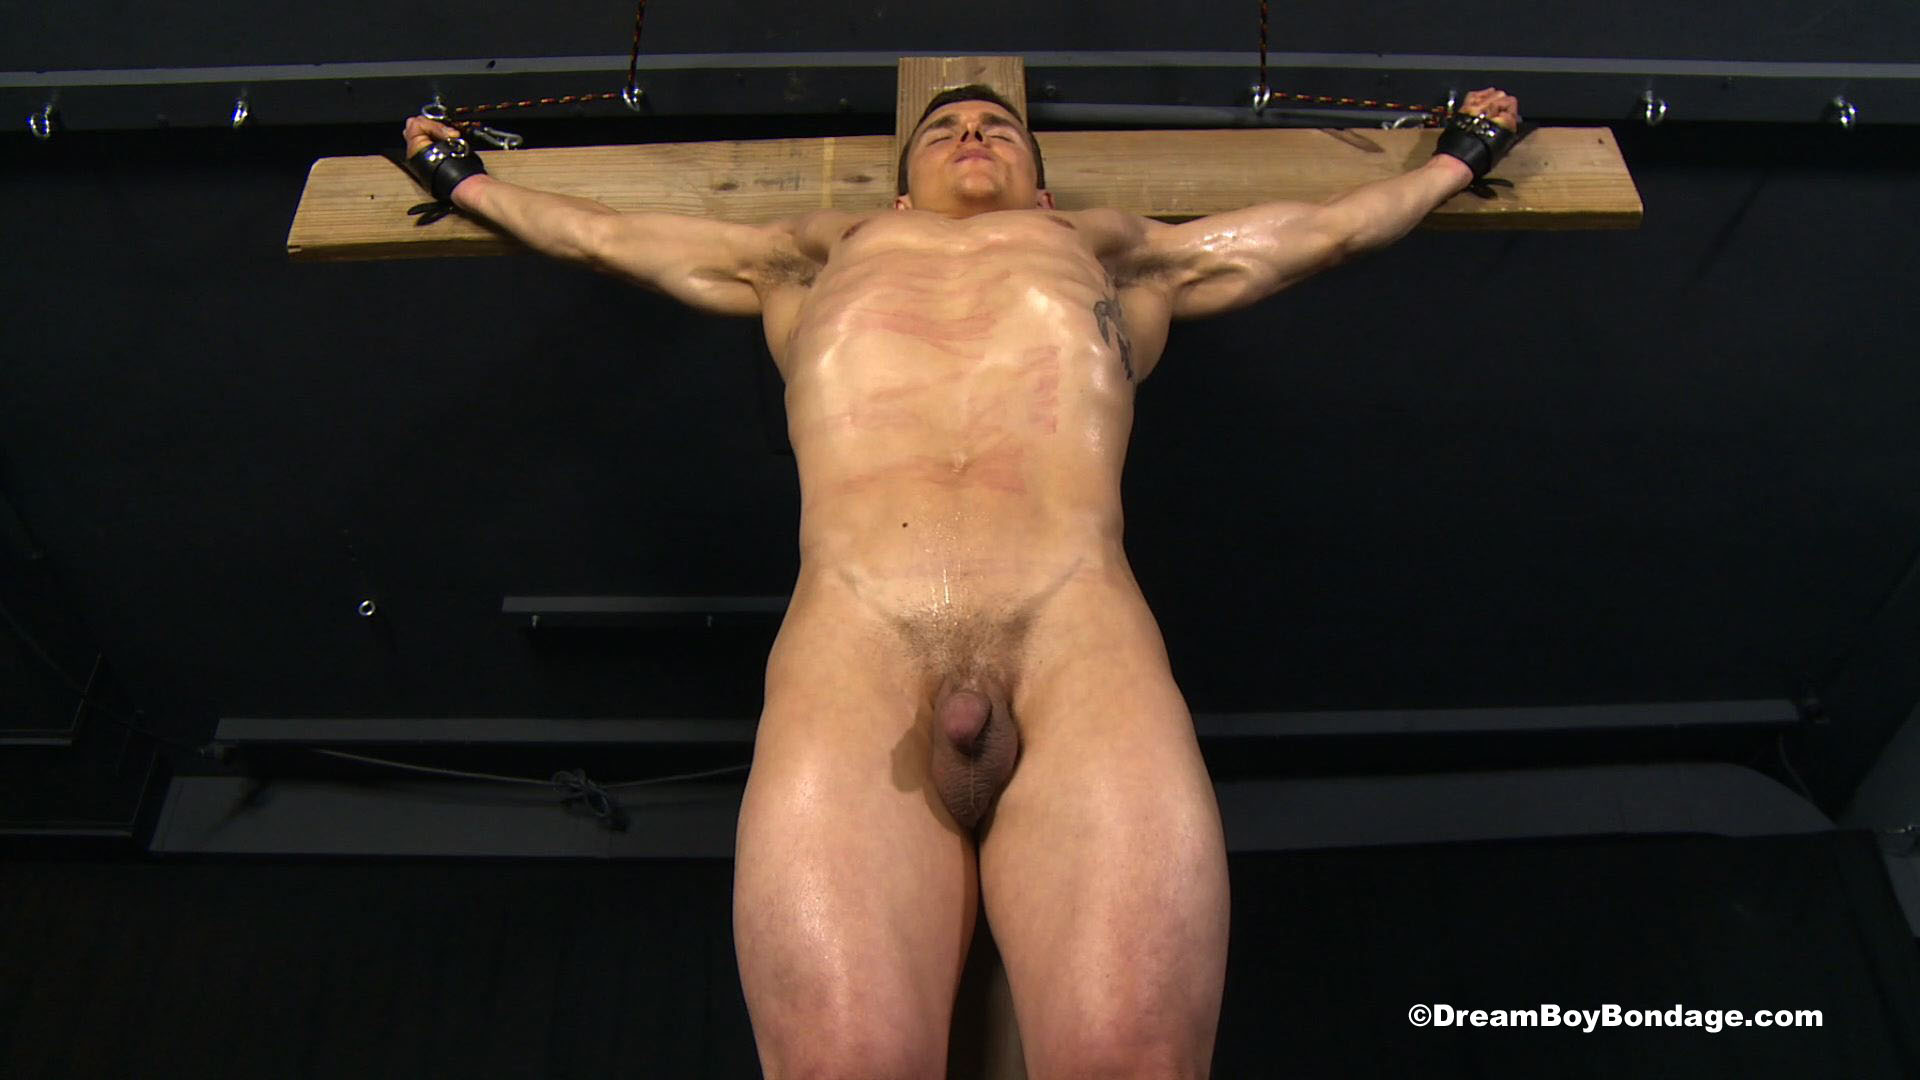 Male Bondage Clips